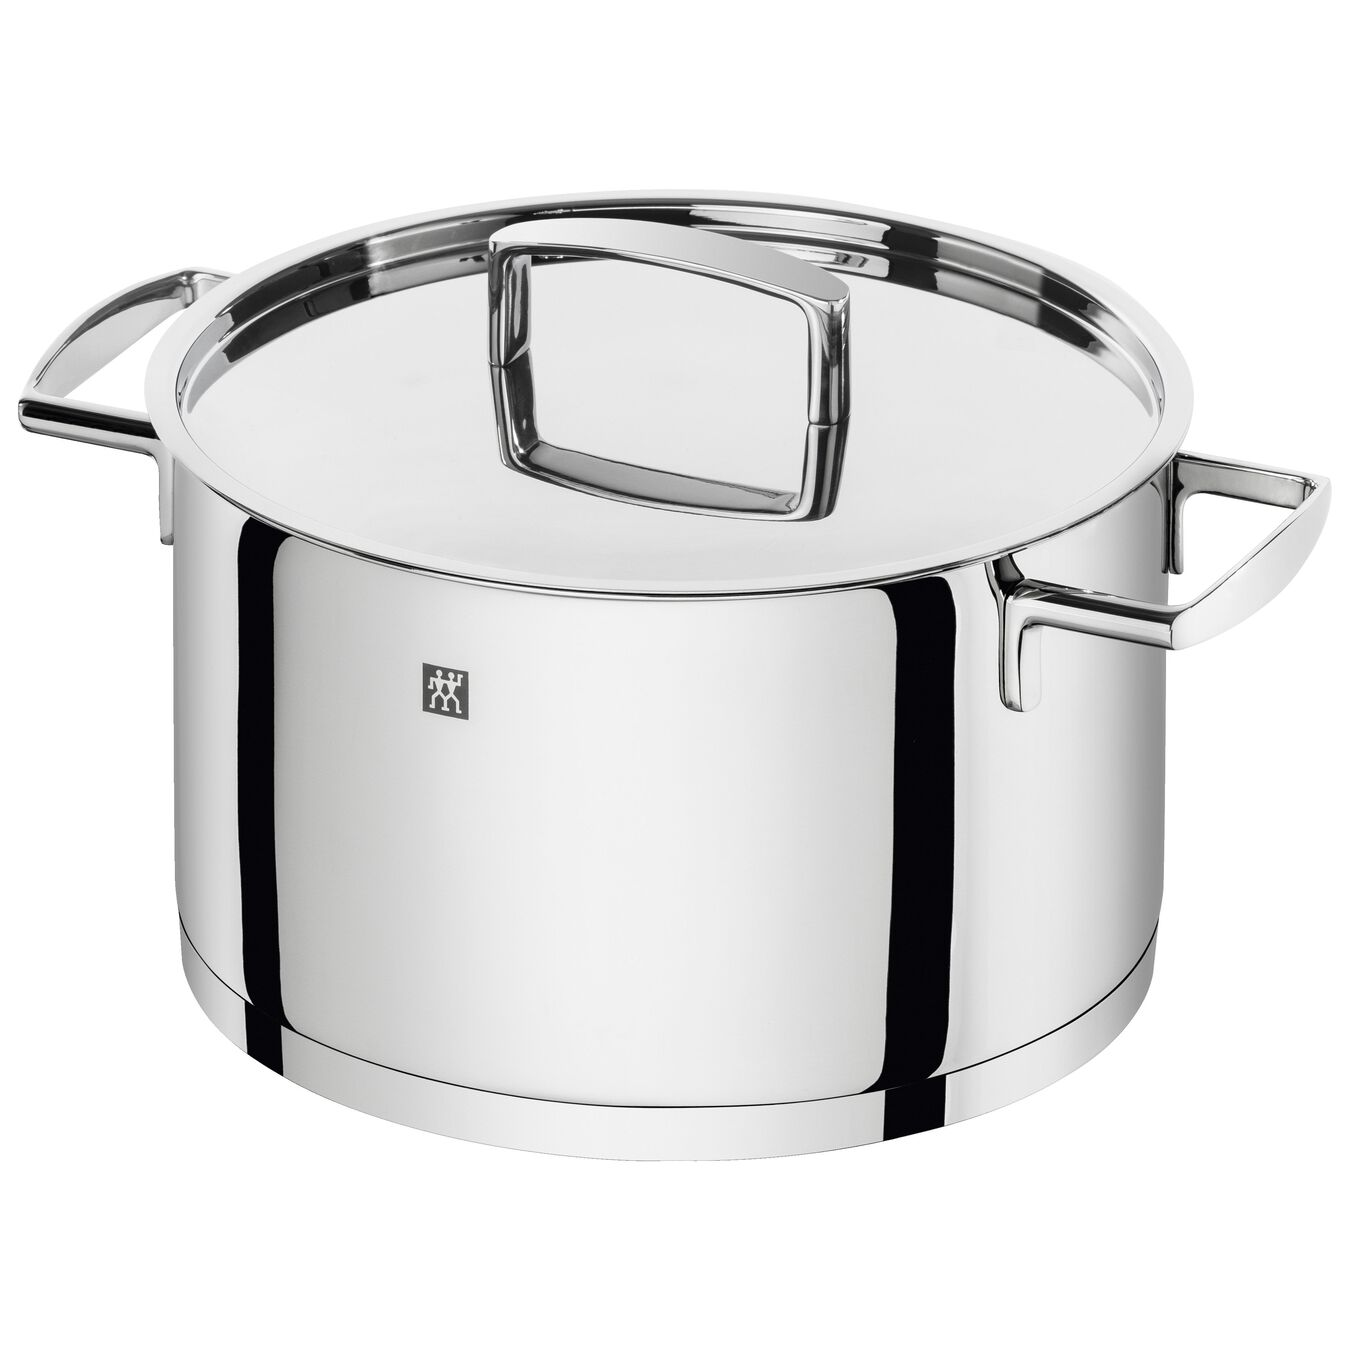 Ensemble de casseroles 5-pcs, Inox 18/10,,large 8